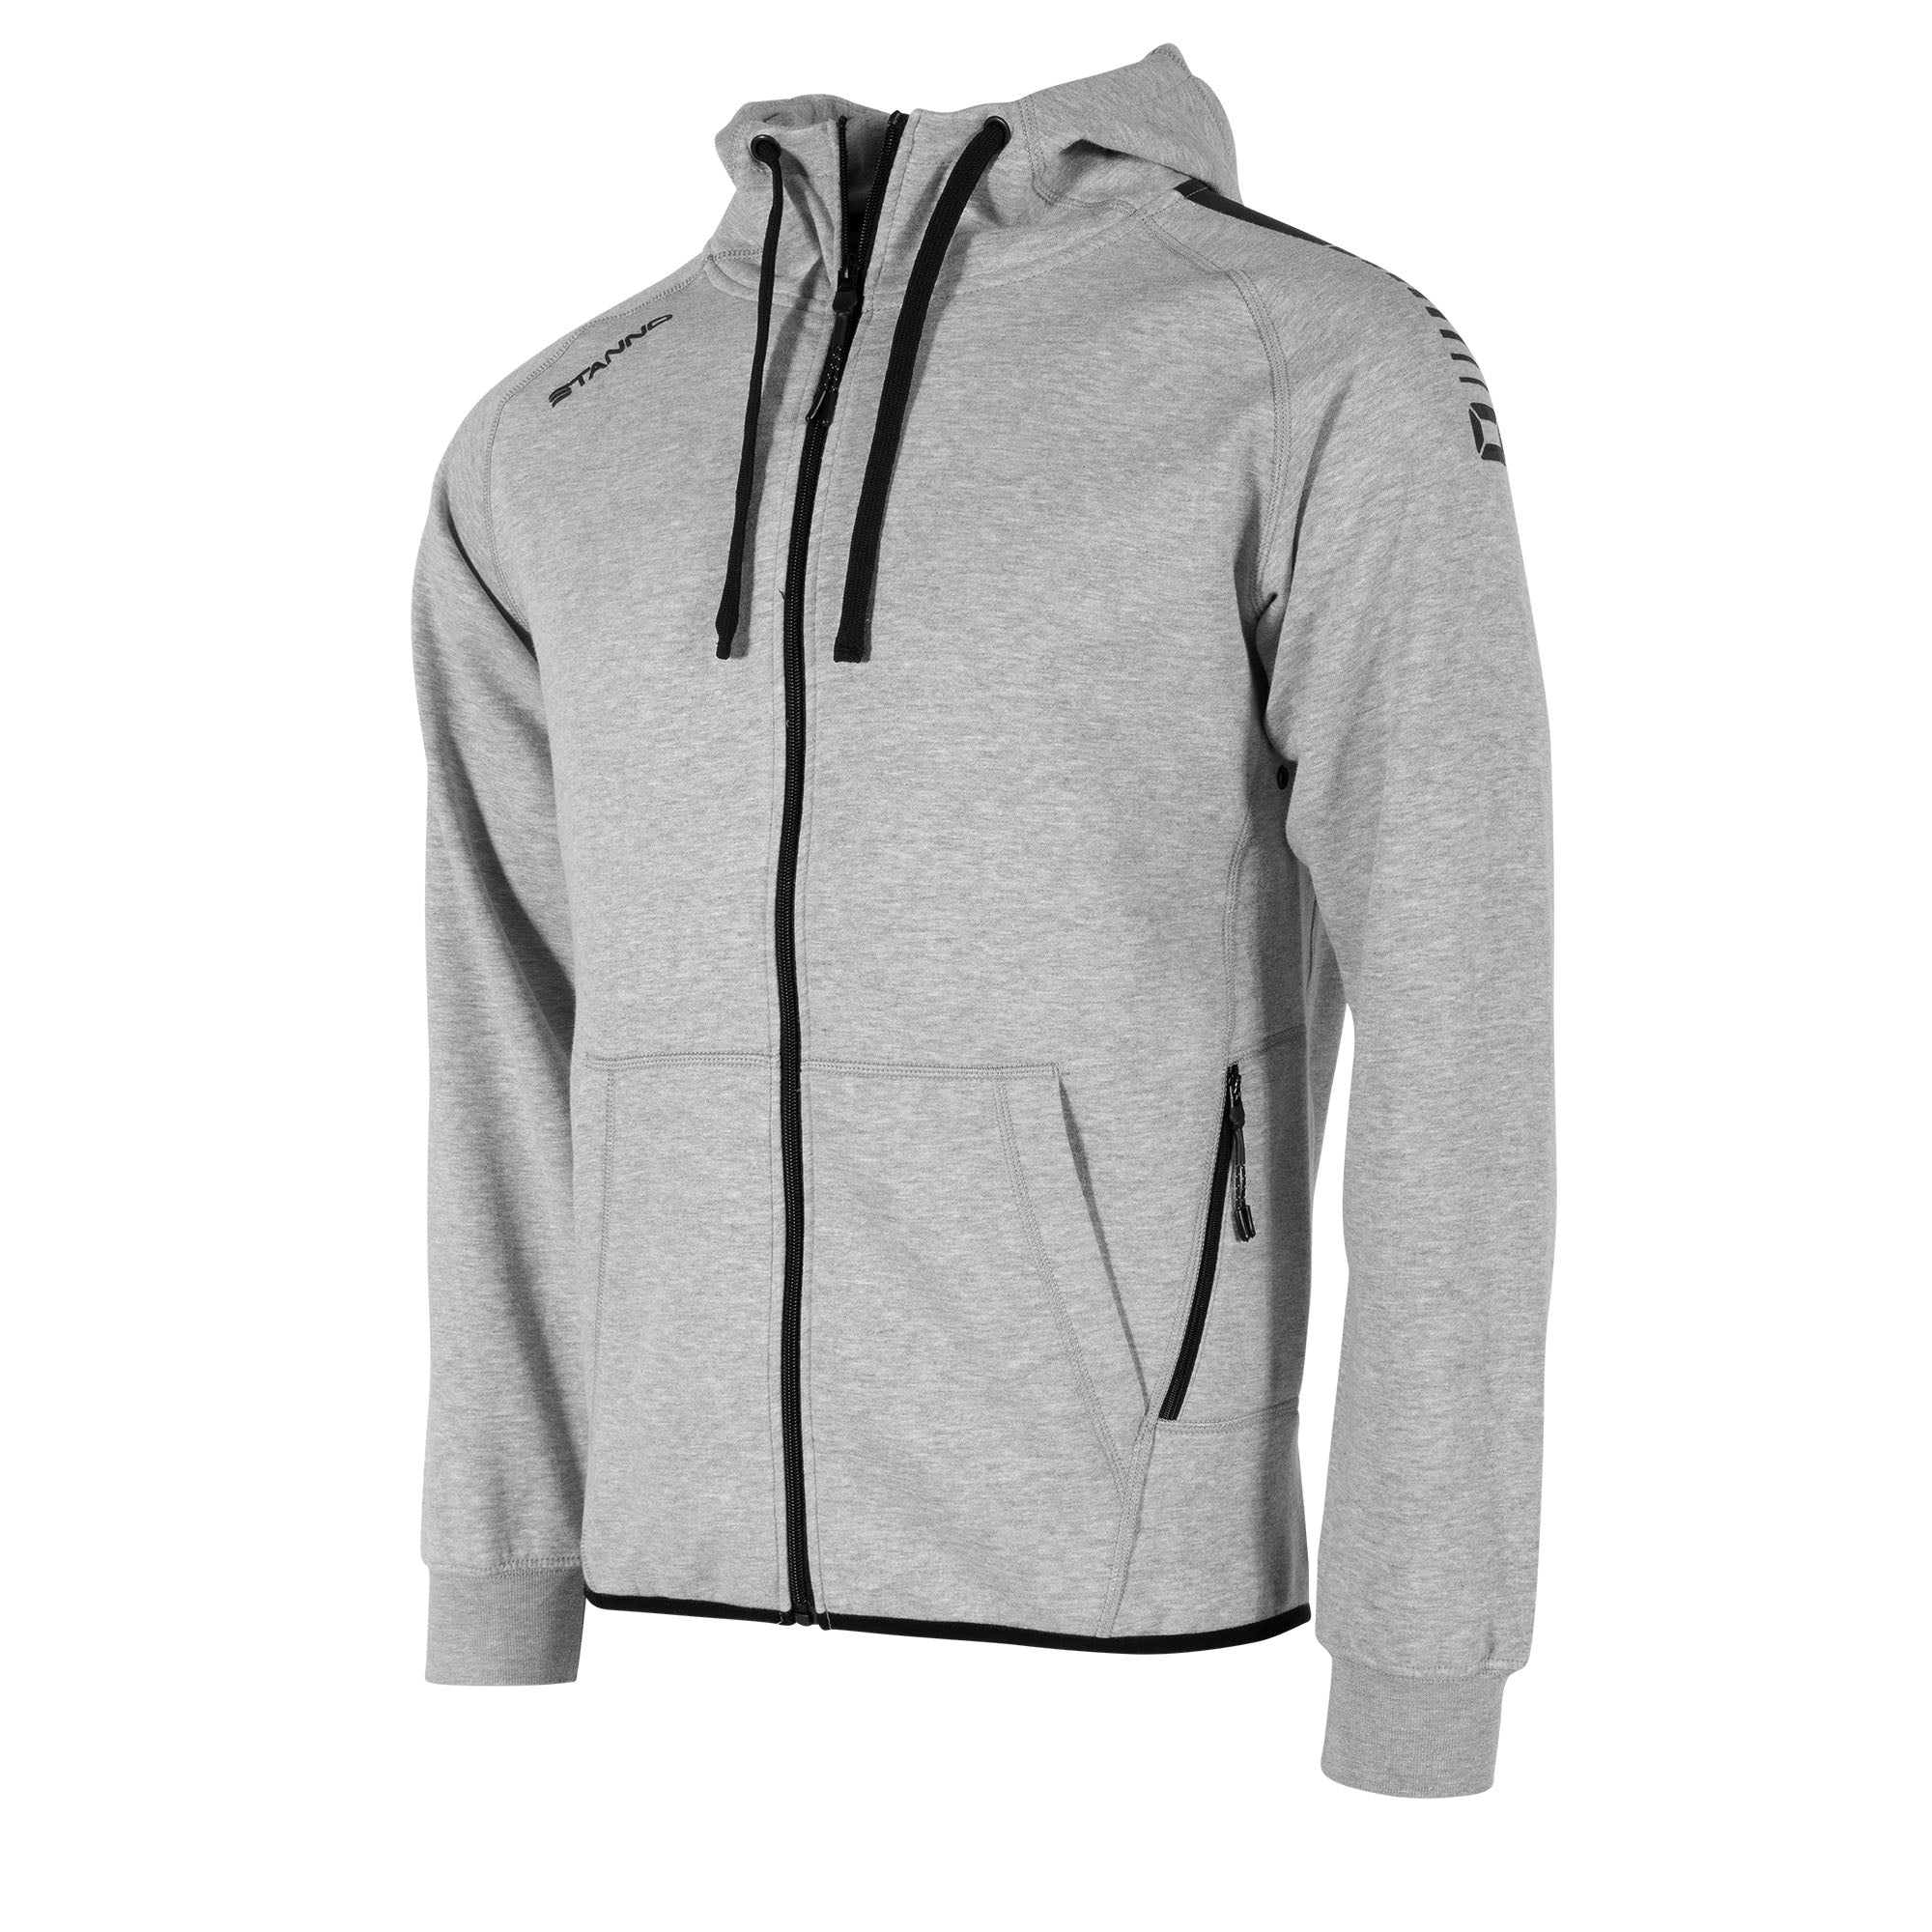 Front view of grey Stanno Ease Full Zip Hoodie. Black shoulder prints and black detailing of left front zip pocket and drawcords.